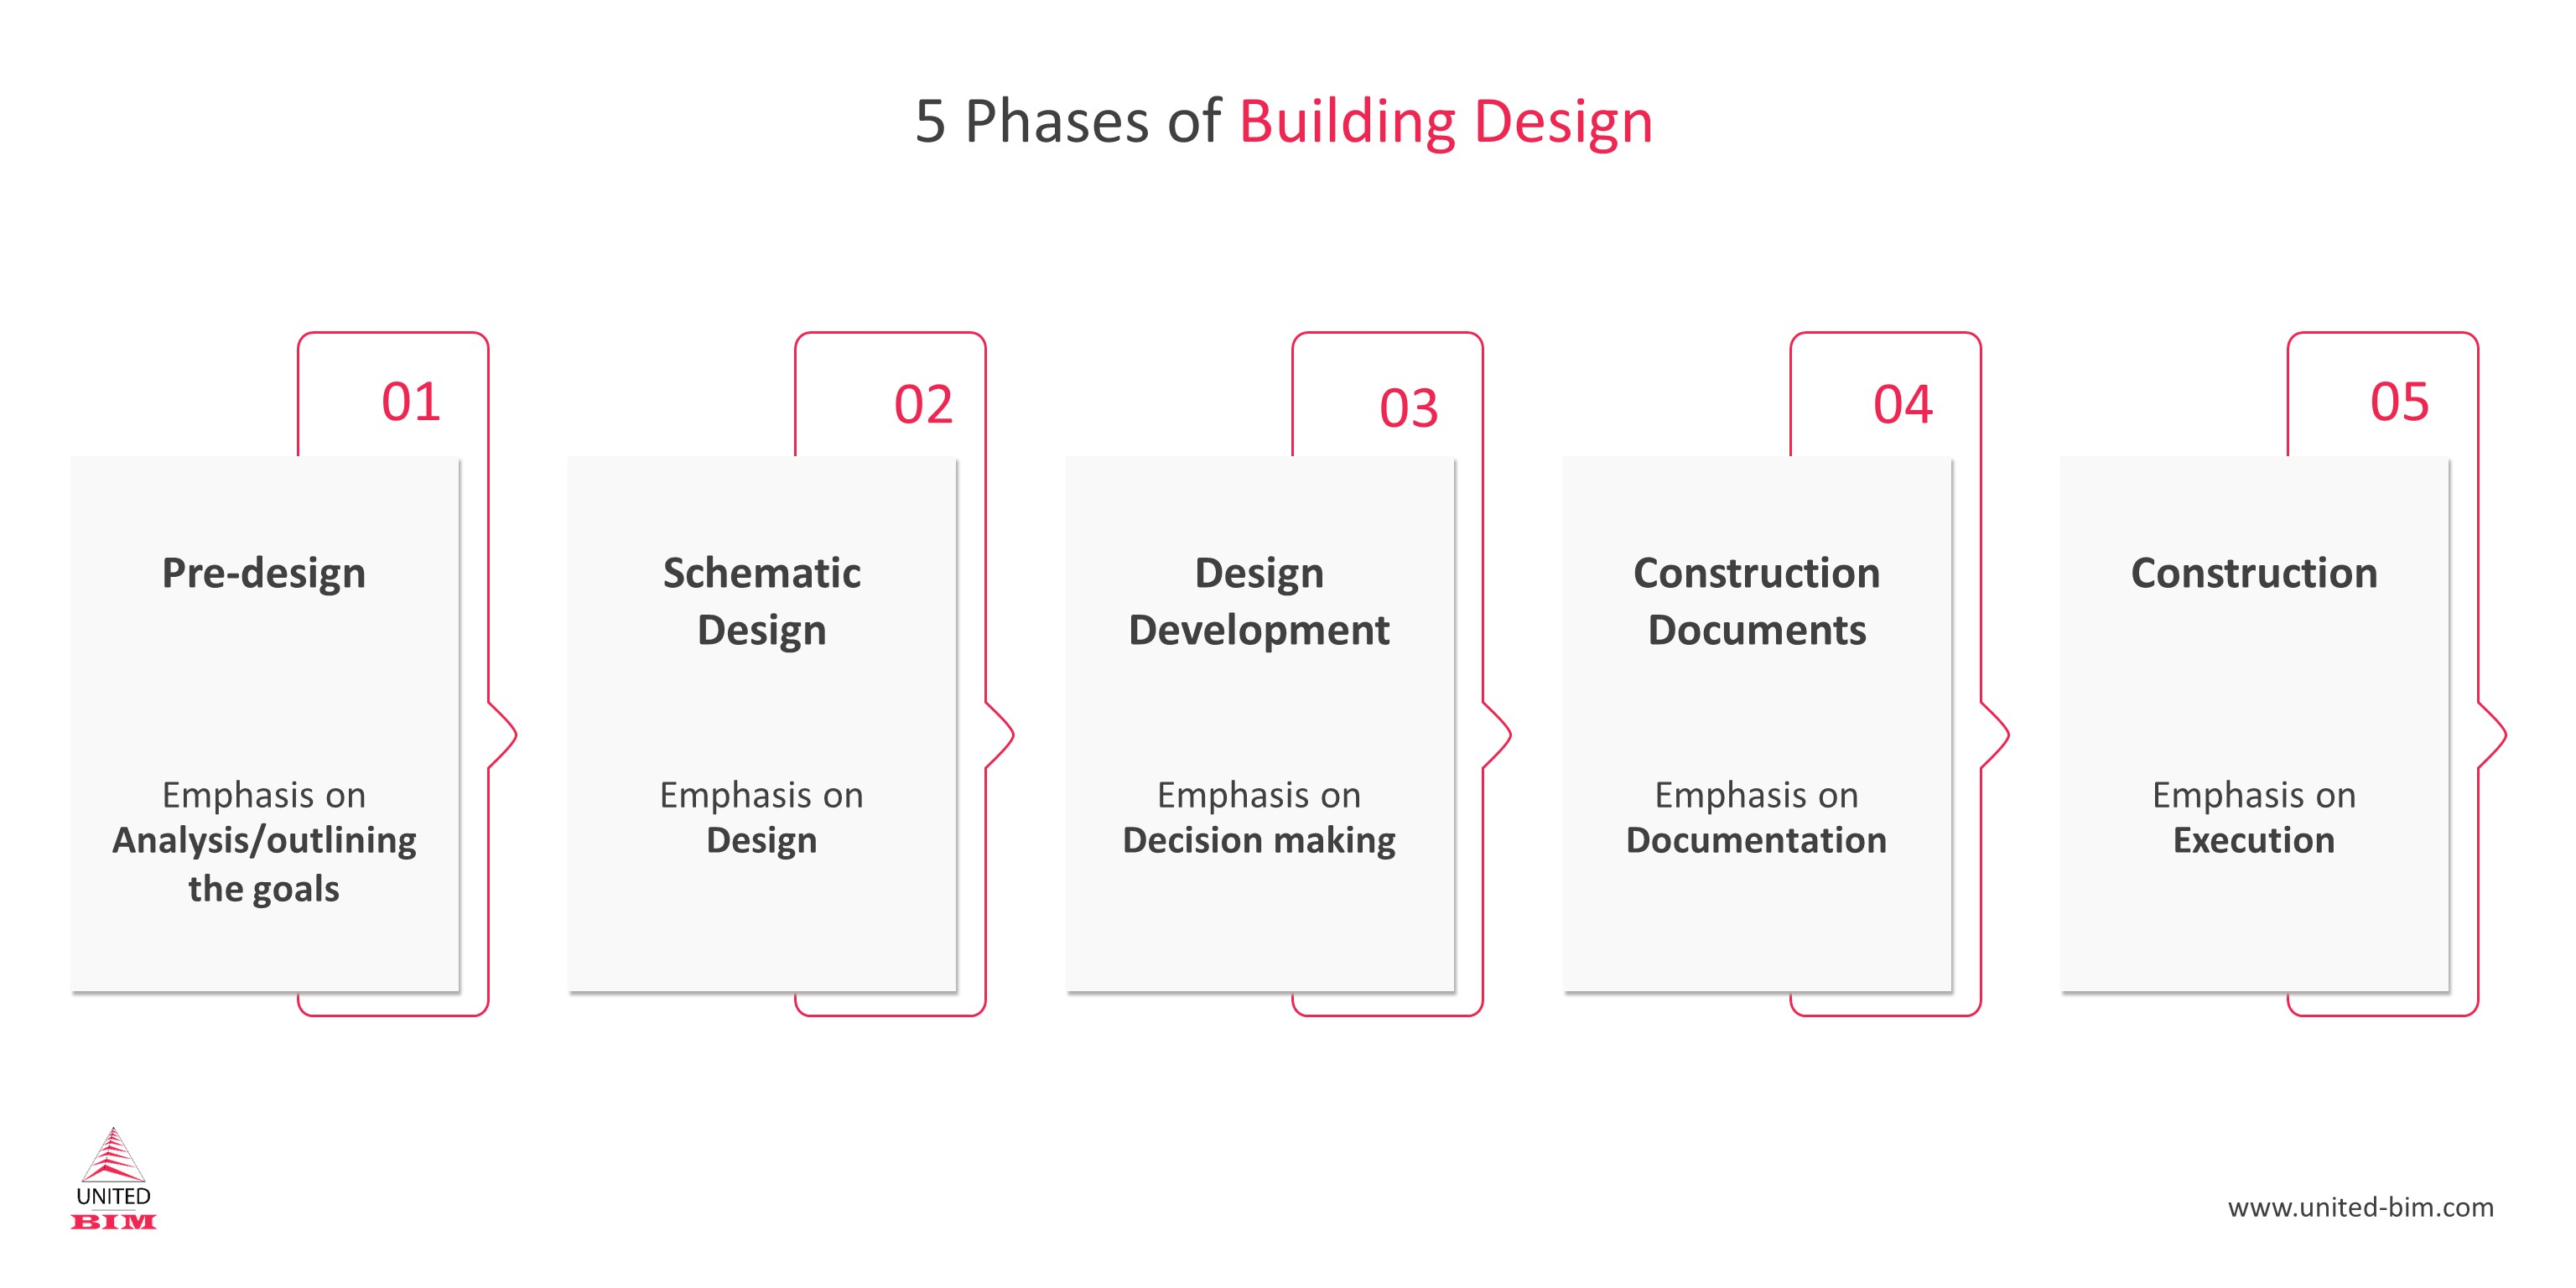 5 Phases of Building Design.